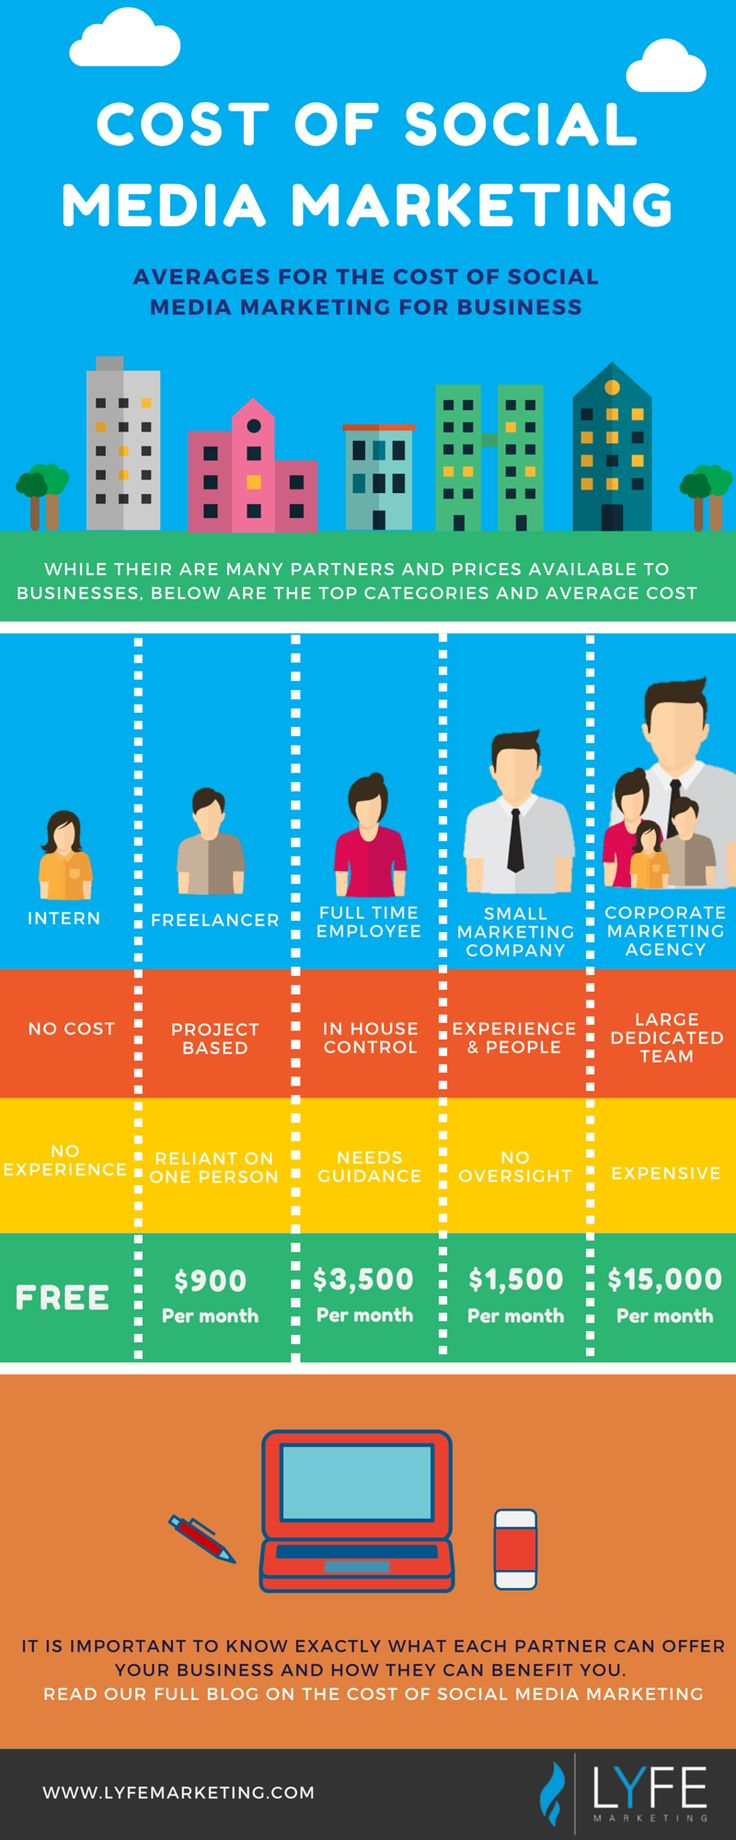 """How much does social media marketing cost?"" In depth look at interns, freelancers, employees, small marketing companies and corporate agencies social media management pricing."